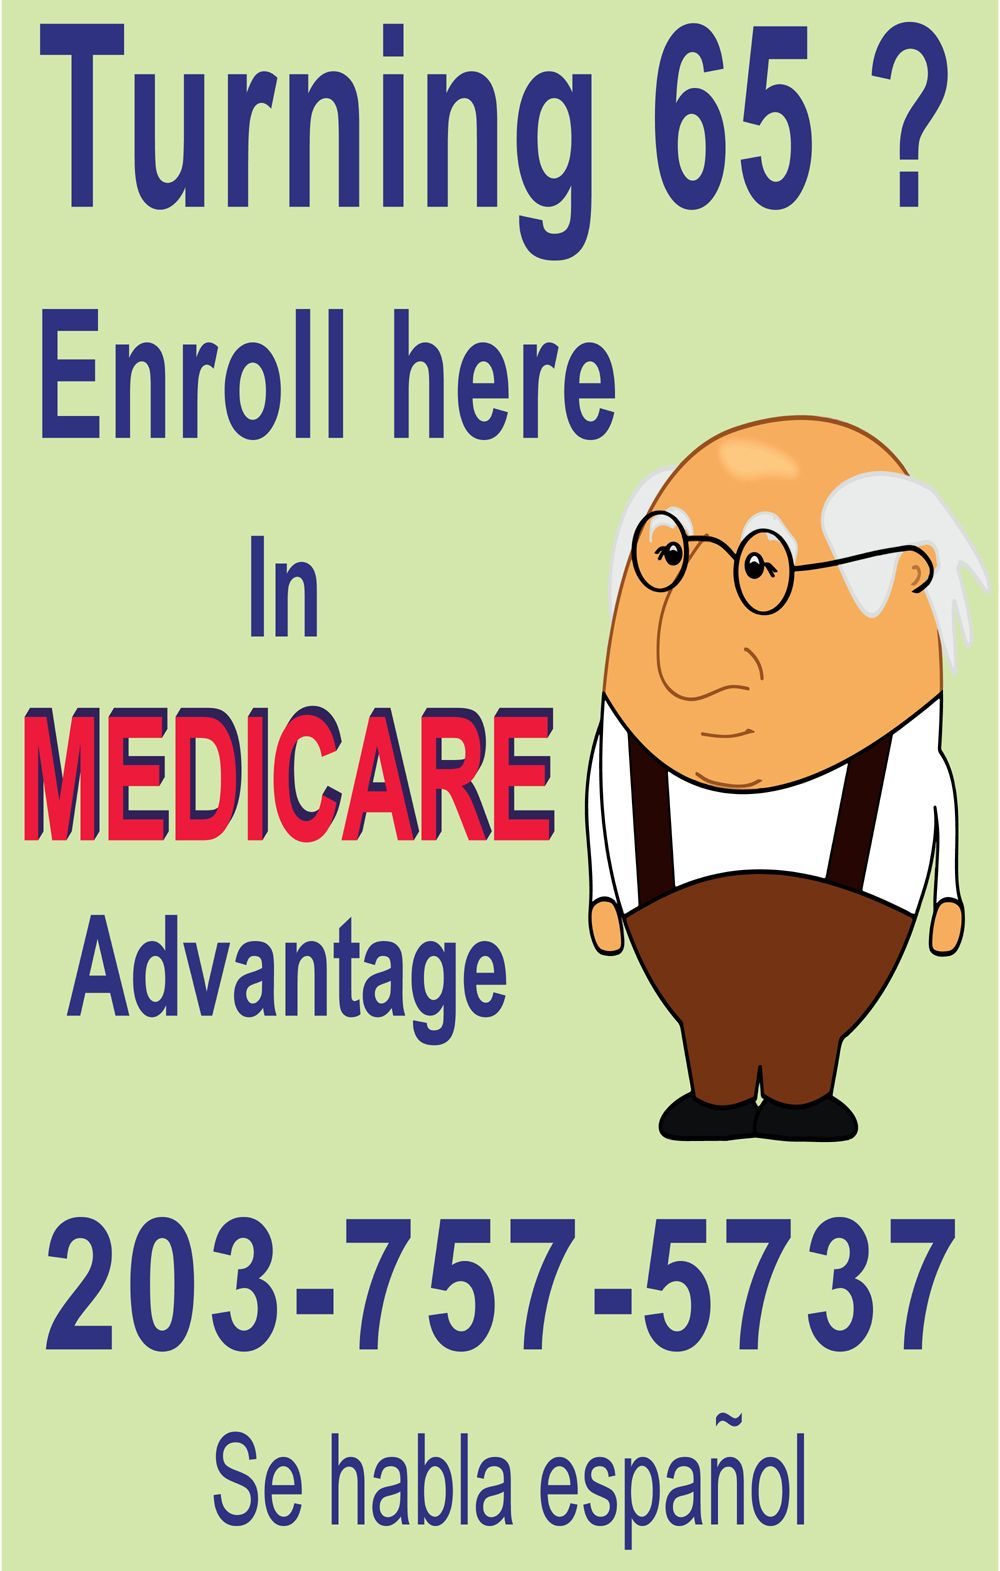 Connecticut Medicare Advantage, Medicare Supplemental Insurance, Medigap Insurance, Medigap plans, Prescrition drug plans, Medicare Part C, Medicare Part C plans, Medicare Part D, Medicare Part D plans, Health plans, Senior health plans